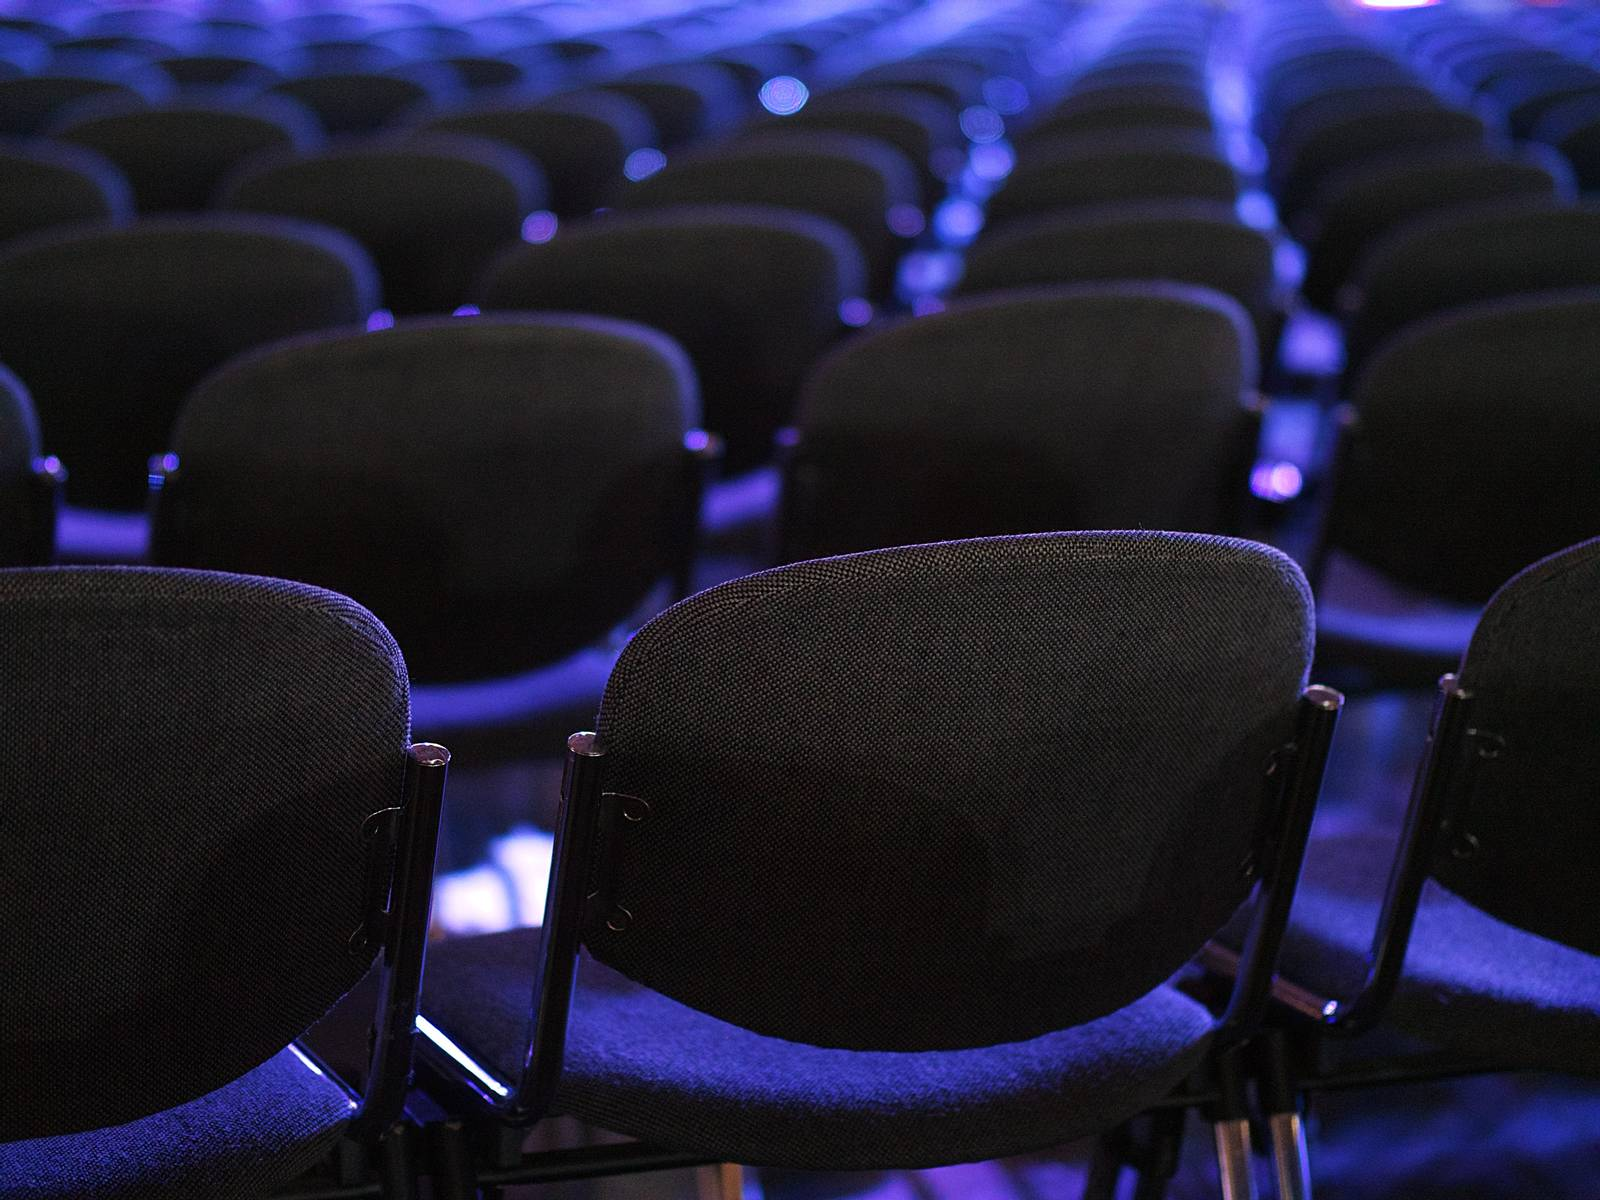 Empty seats at a conference